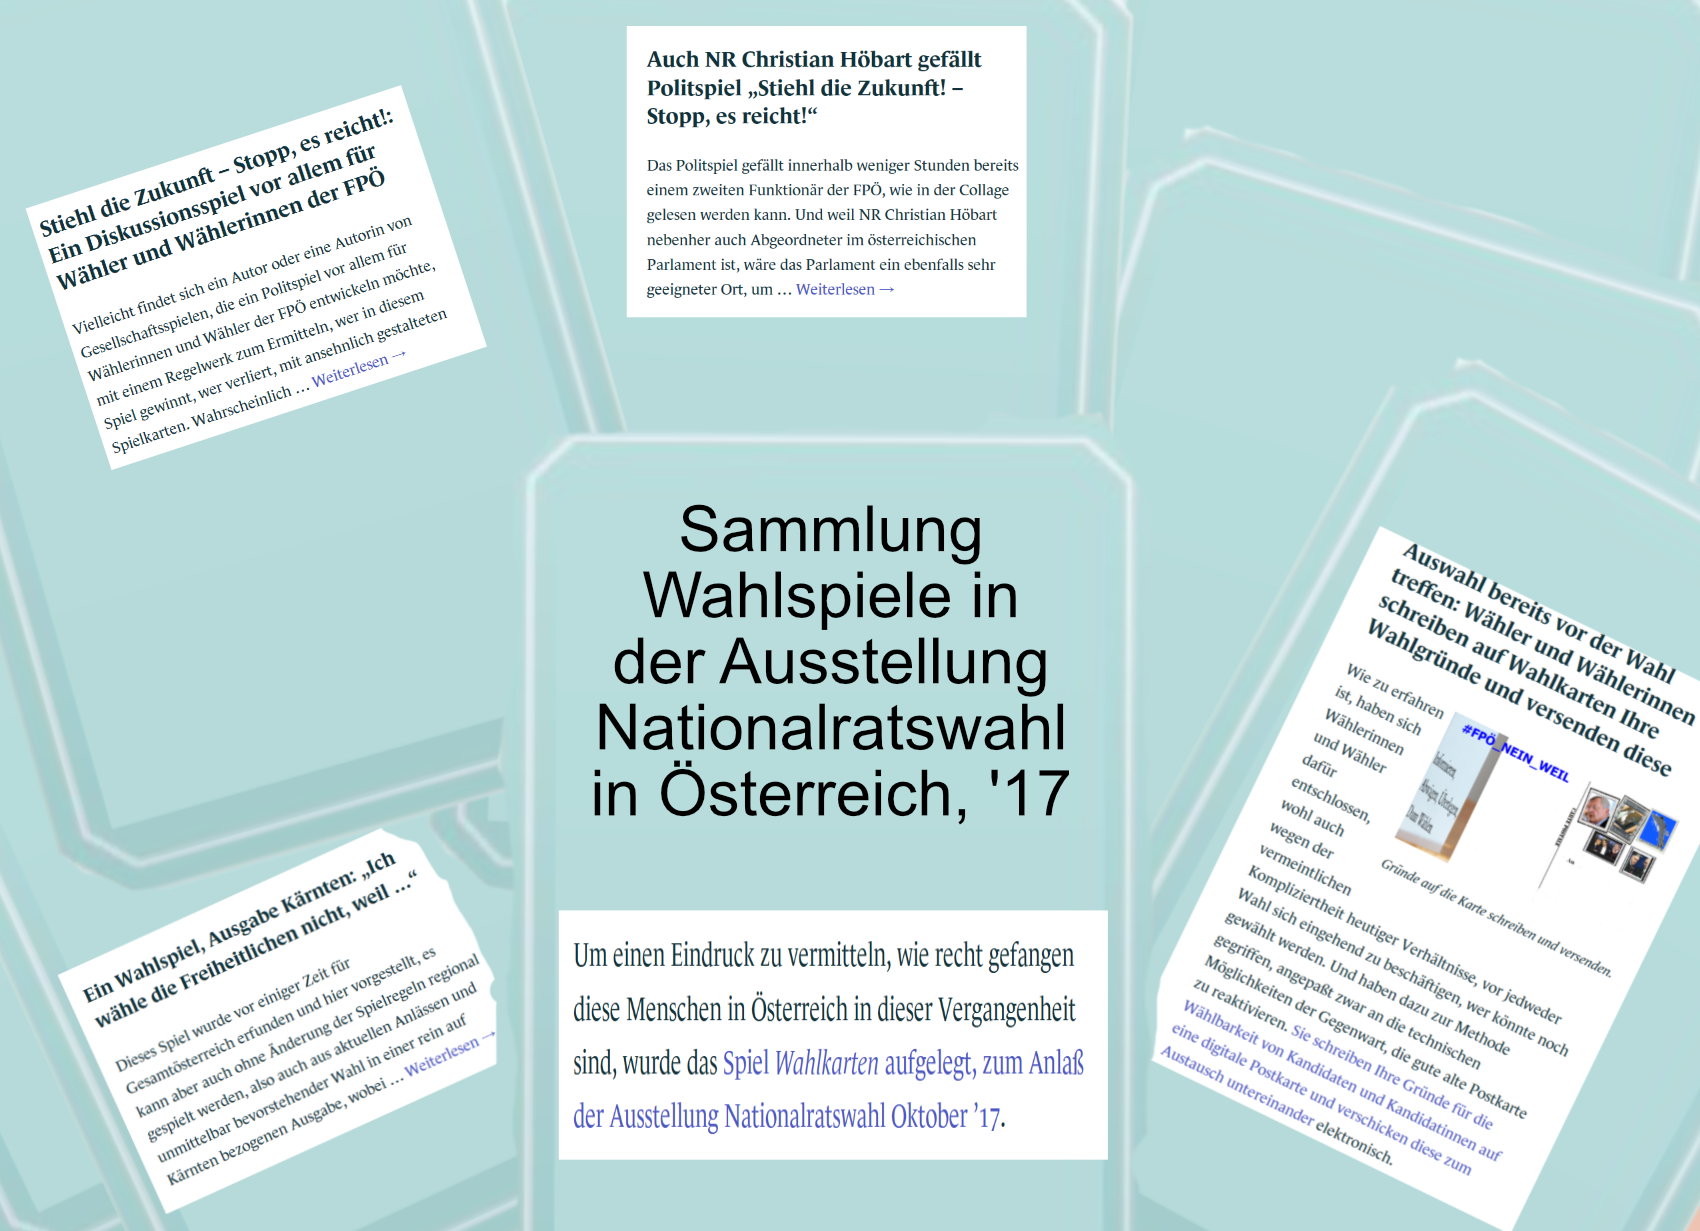 Nationalratswahl 2017 - Wahlspiele